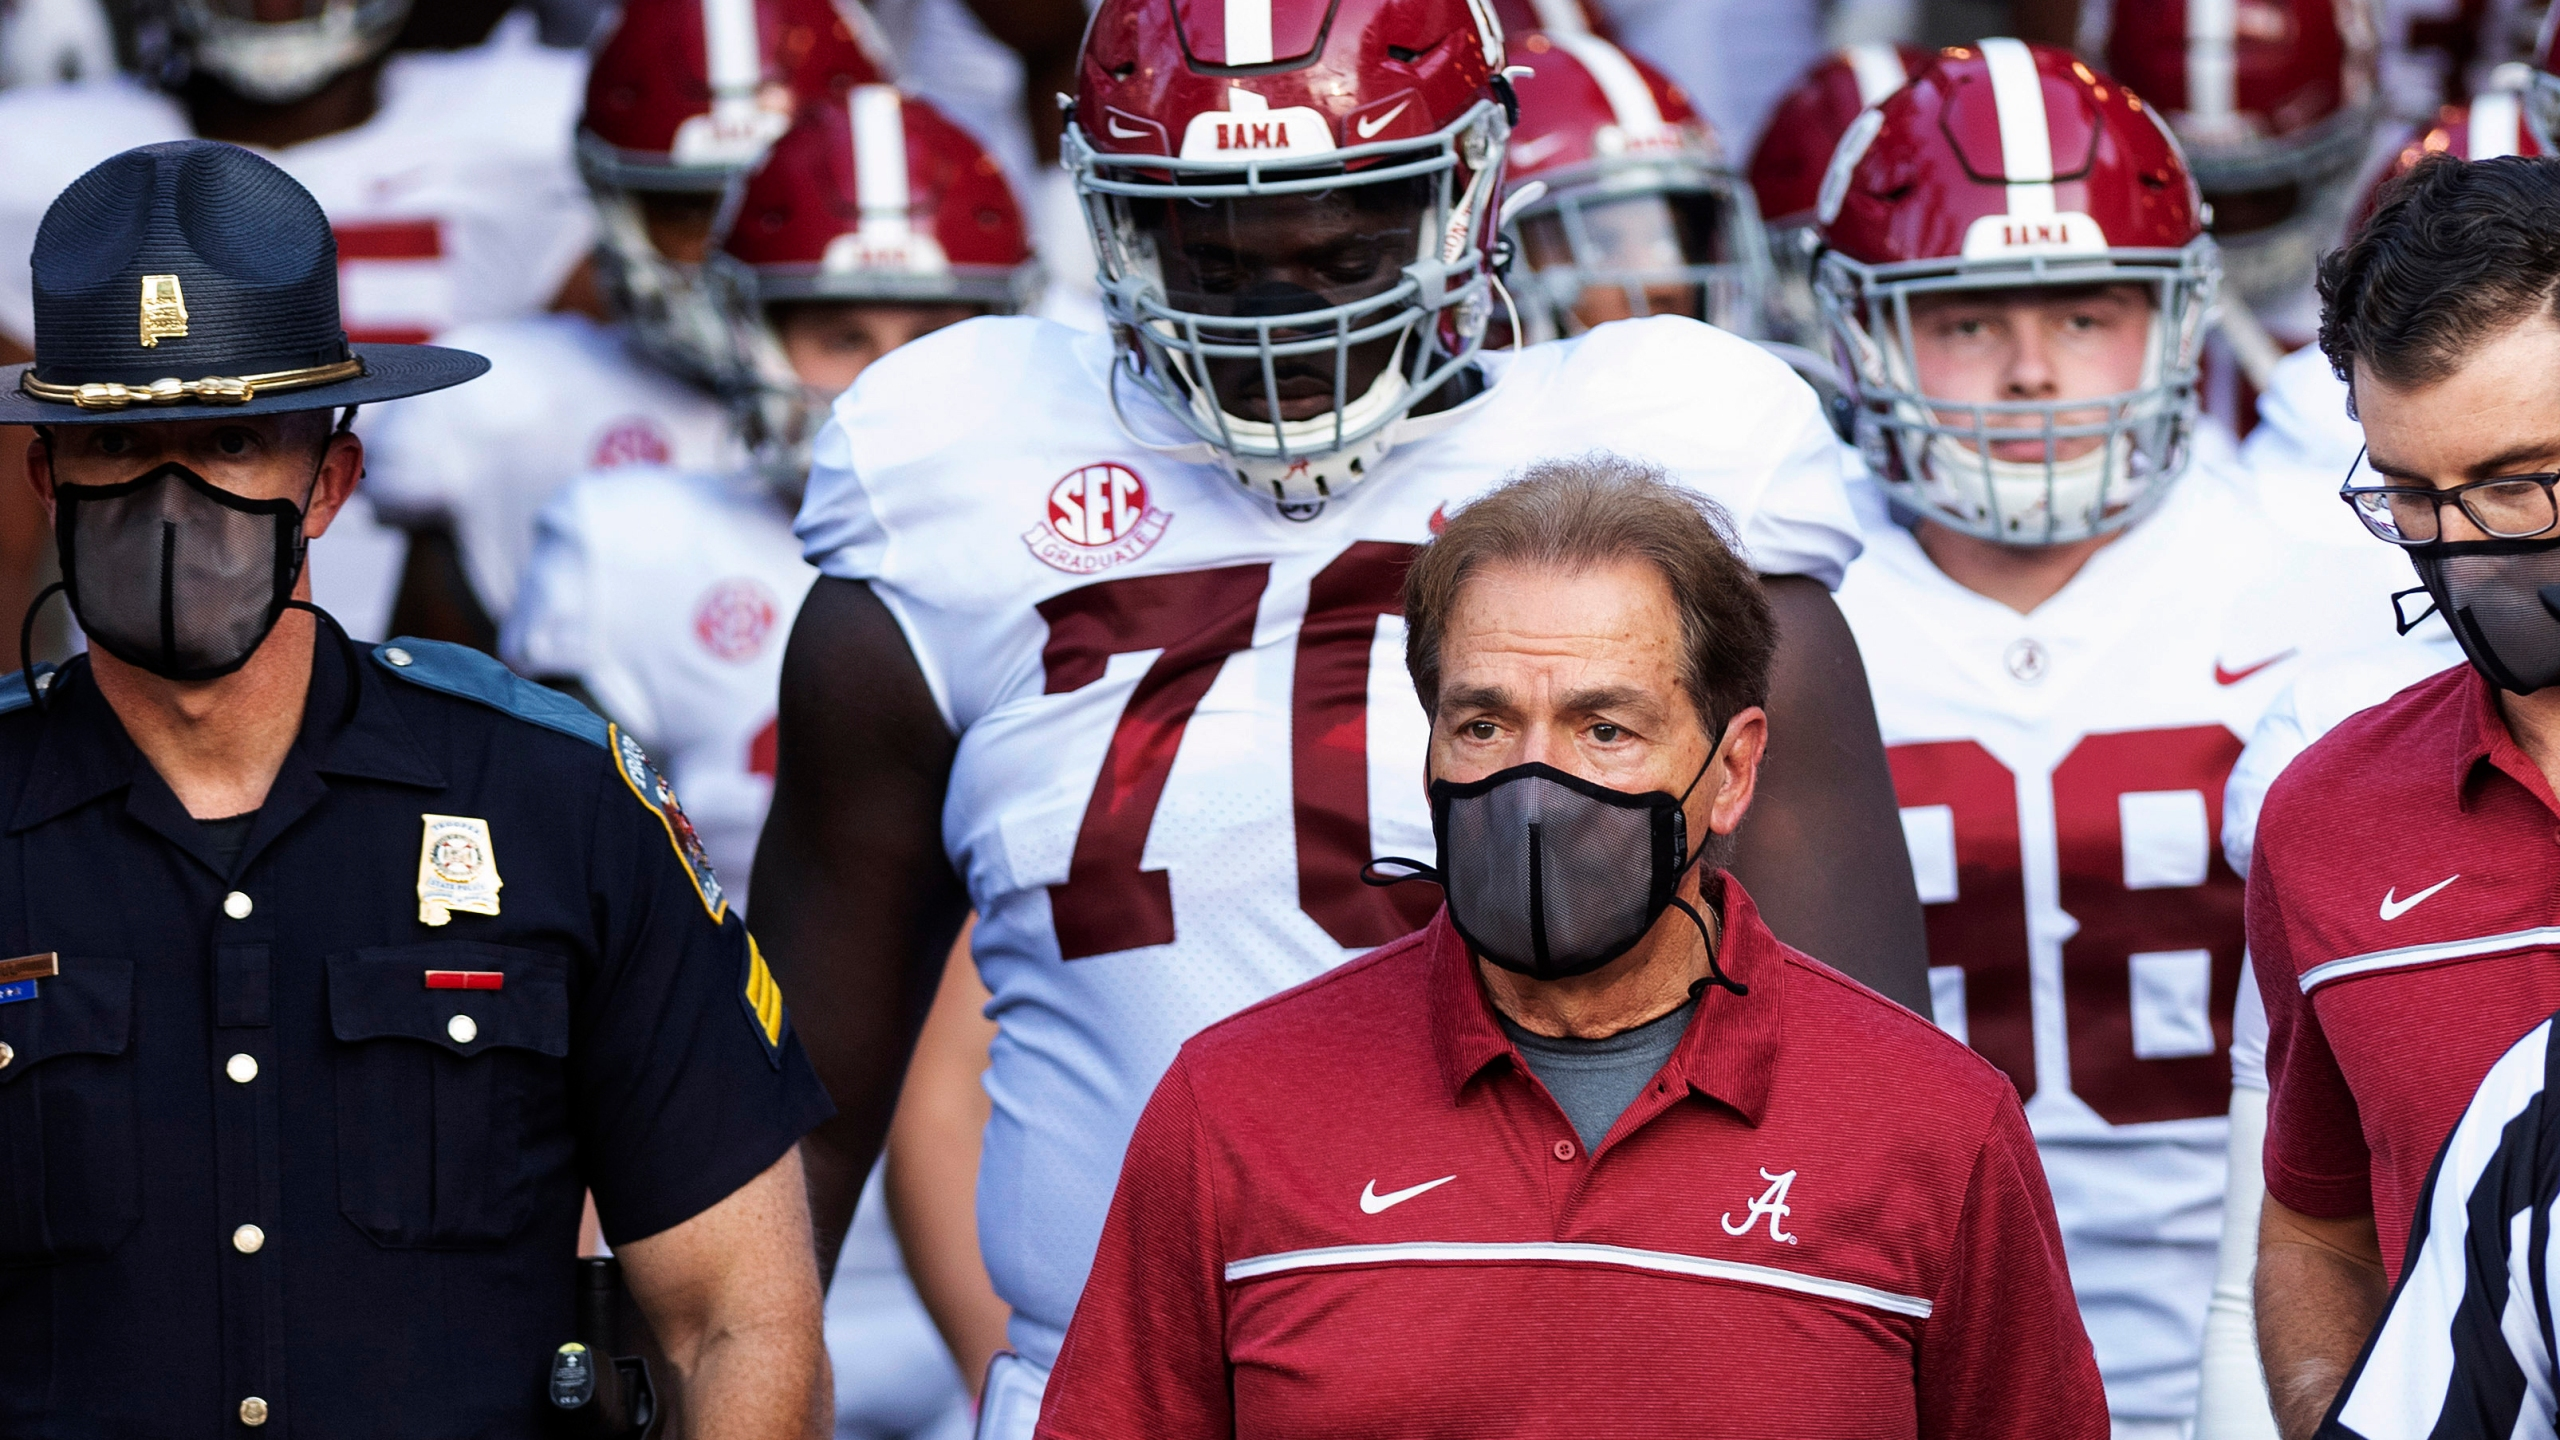 Alabama coach Nick Saban leads his team to the field before an NCAA college football game against Missouri in Columbia, Missouri, on Sept. 26, 2020. (L.G. Patterson / Associated Press)